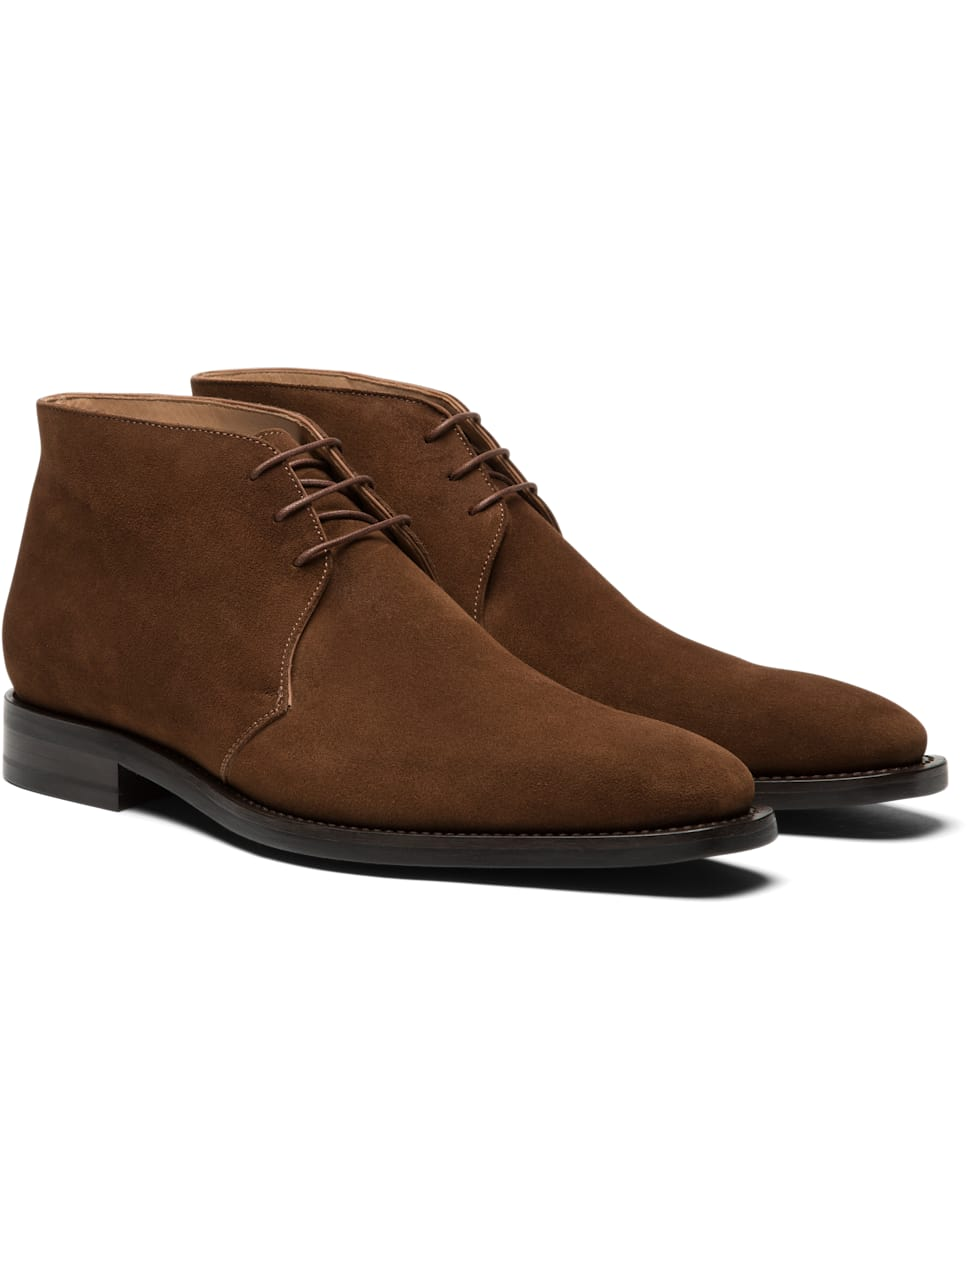 Brown Boot by Suitsupply